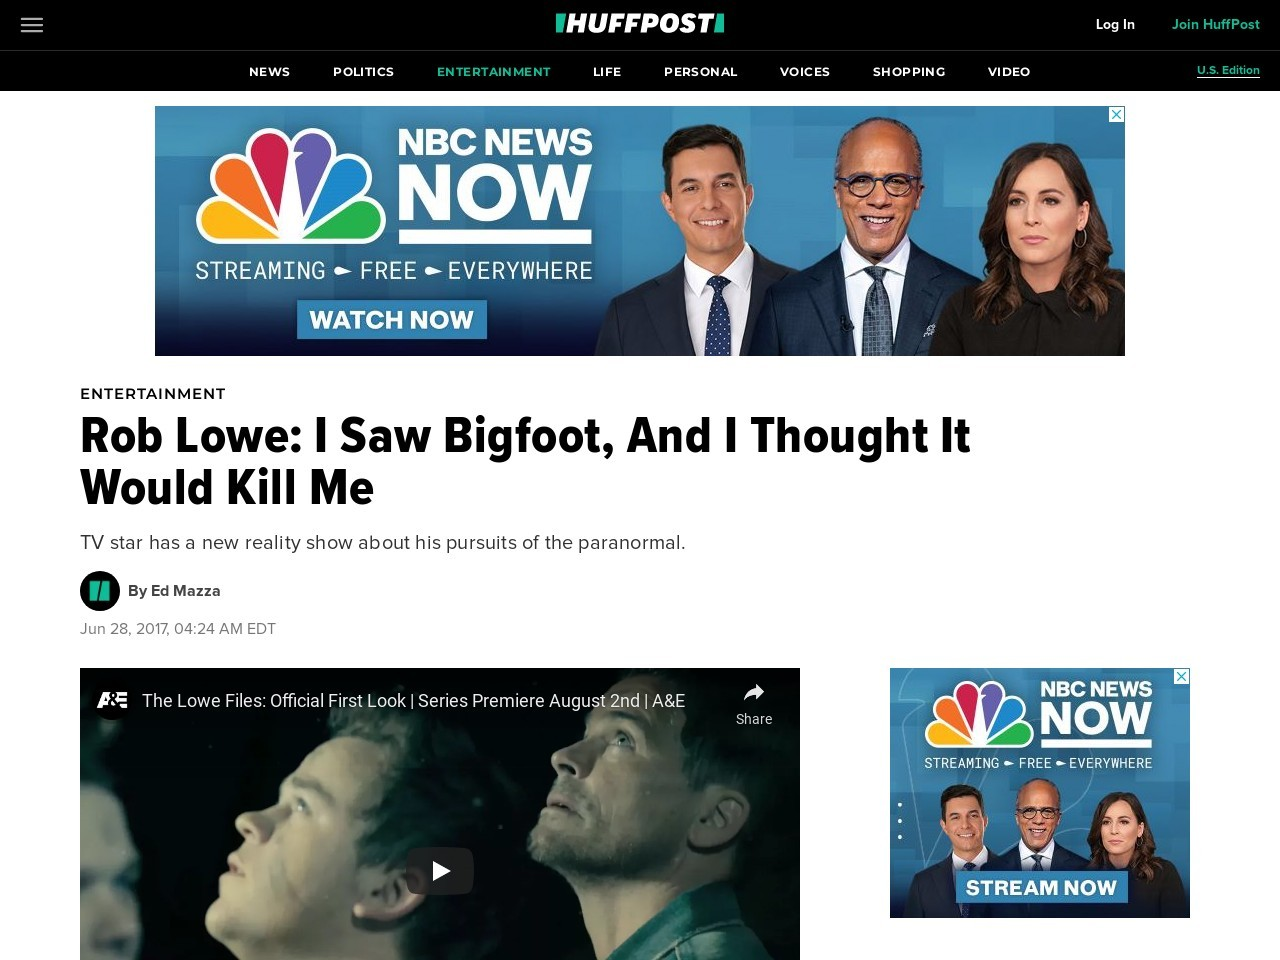 Rob Lowe: I Saw Bigfoot, And I Thought It Would Kill Me – Huffington Post